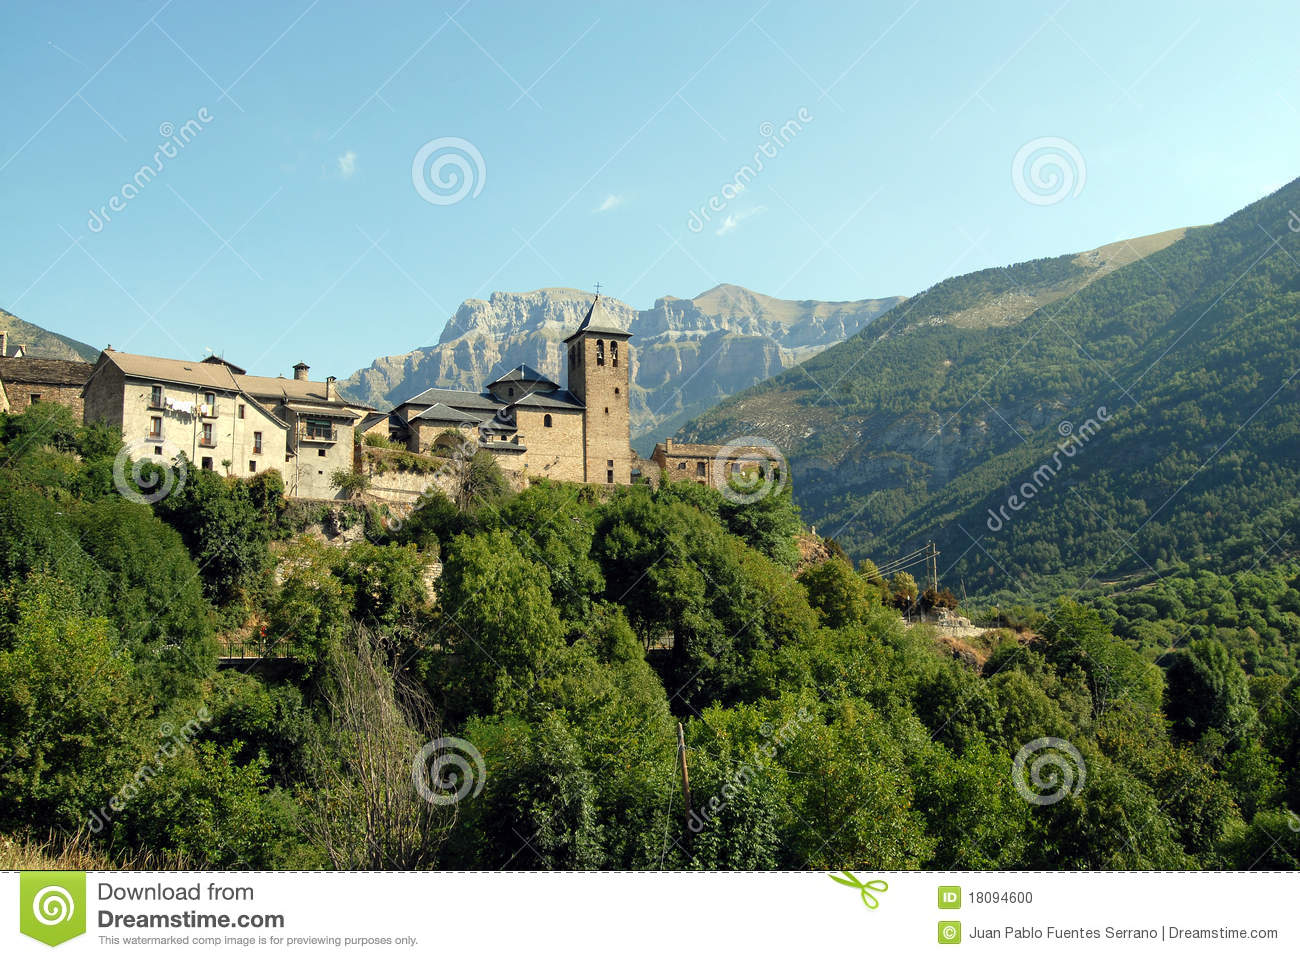 Torla Spain  City pictures : Torla Spain Stock Photo Image: 18094600